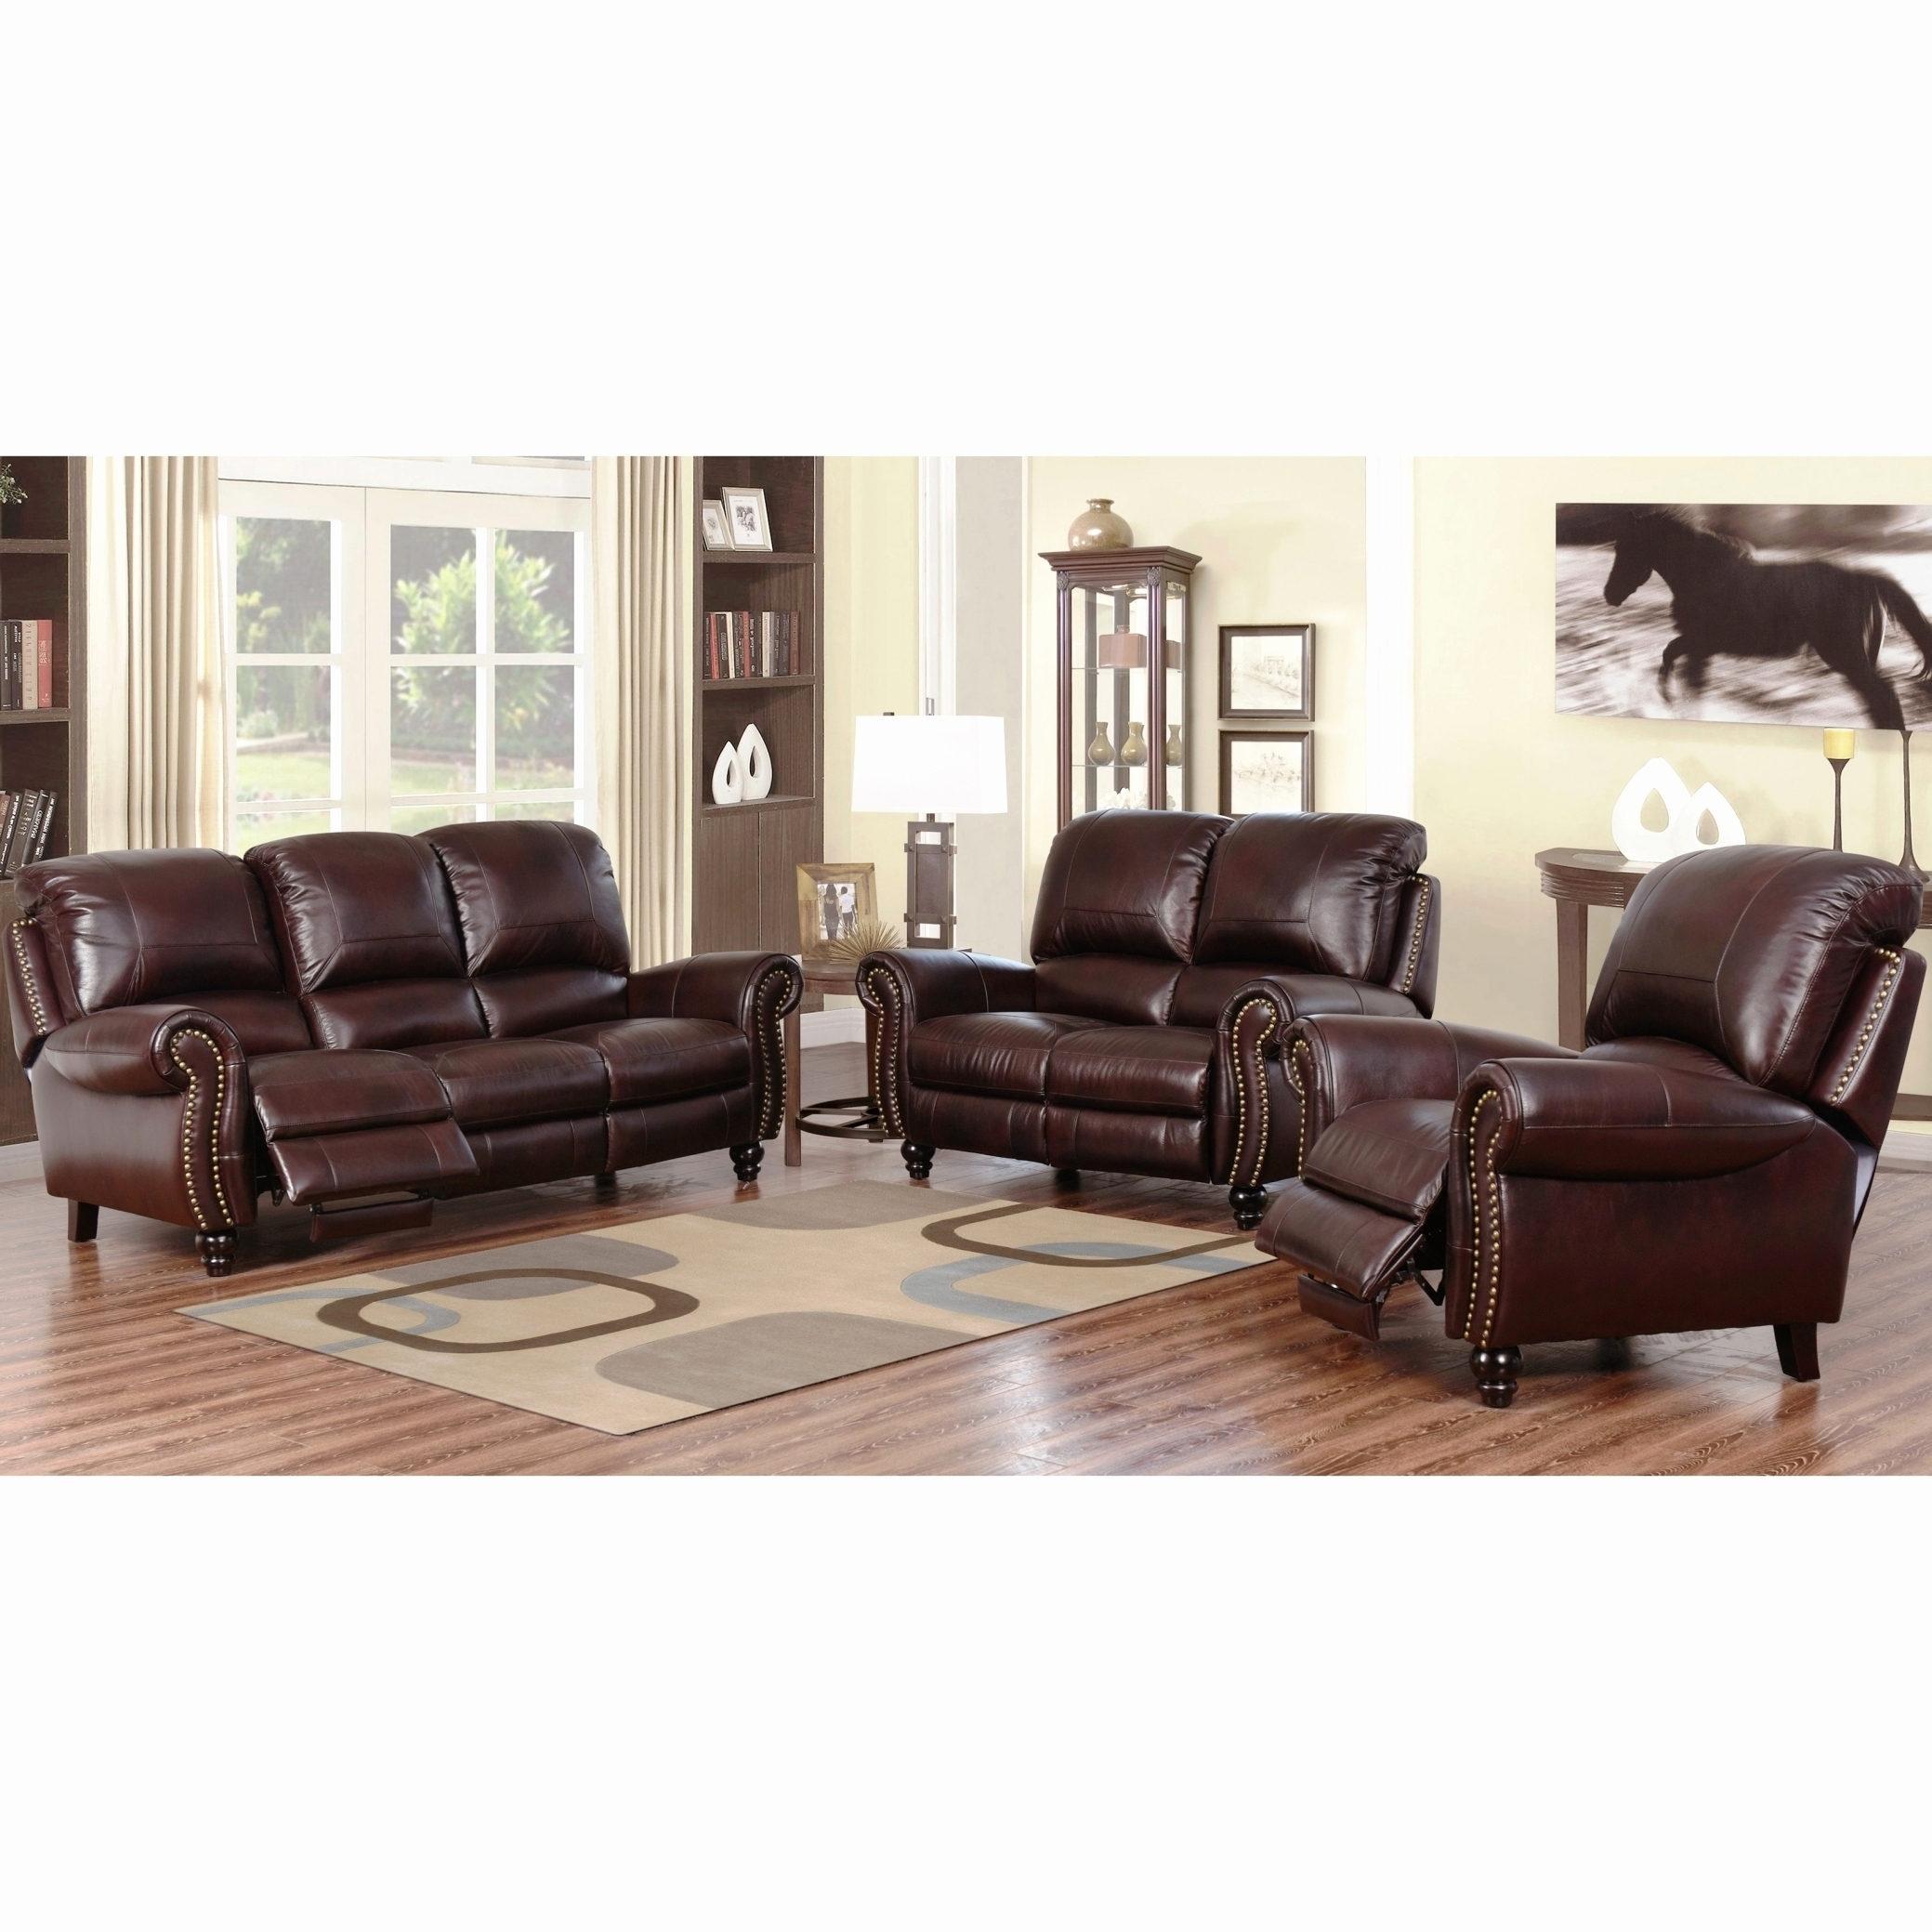 2017 32 Enchanting Overstock Sectional Sofas Pictures – Sectional Sofa Intended For Overstock Sectional Sofas (View 1 of 15)